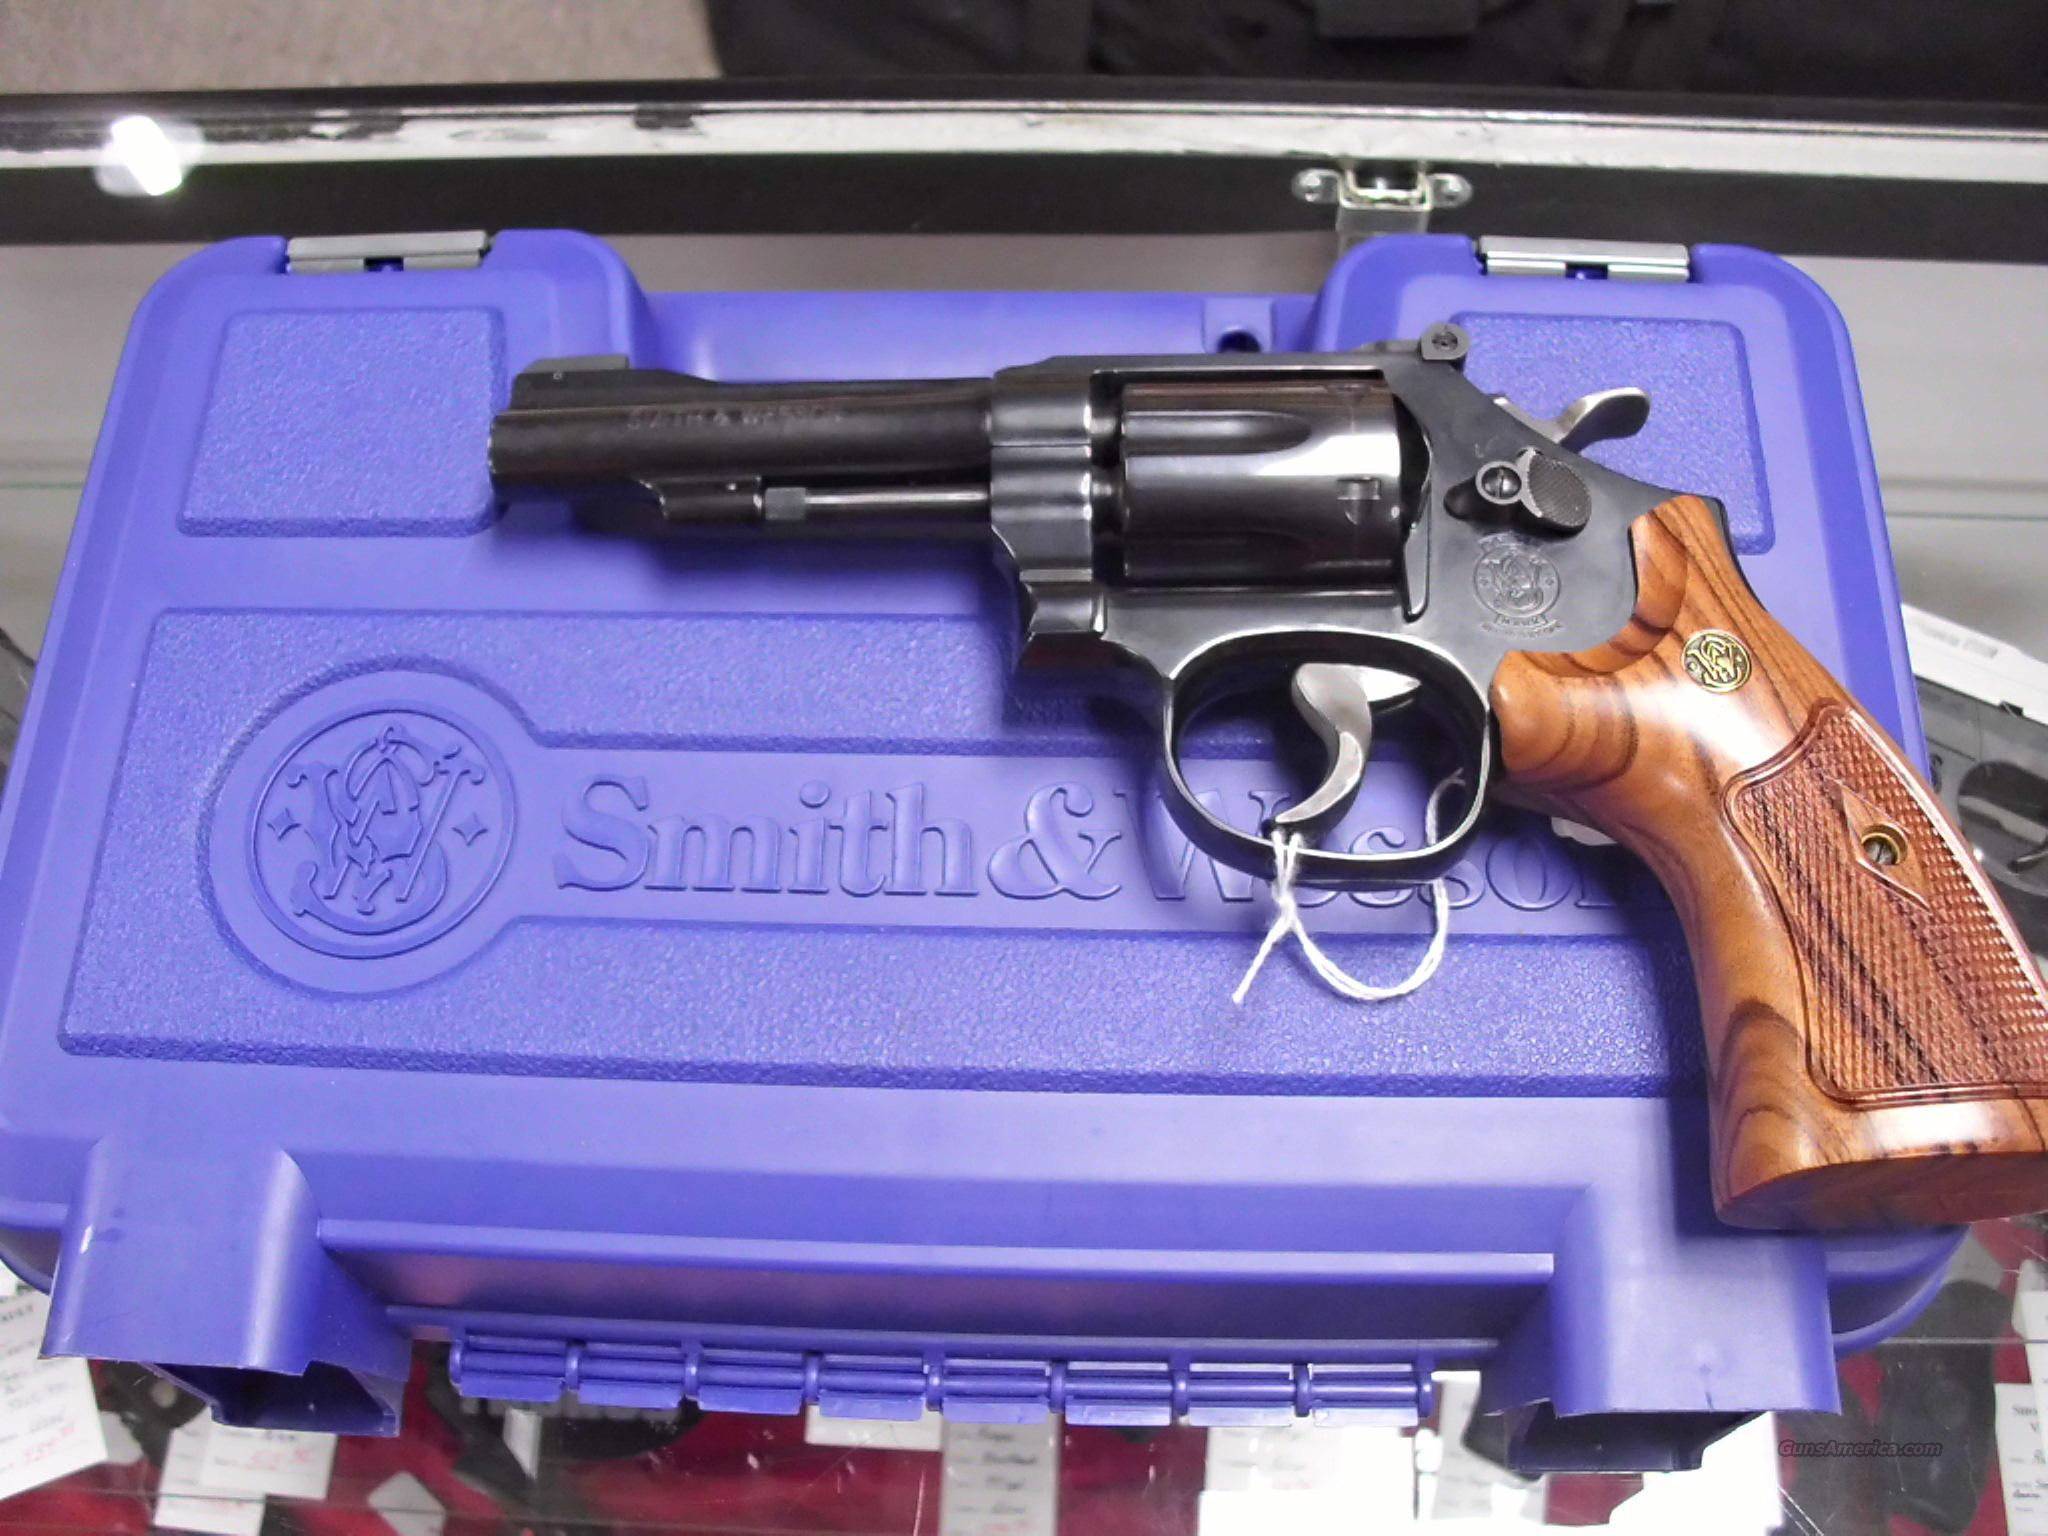 Smith & Wesson 18-7 22LR Used   Guns > Pistols > Smith & Wesson Revolvers > Full Frame Revolver